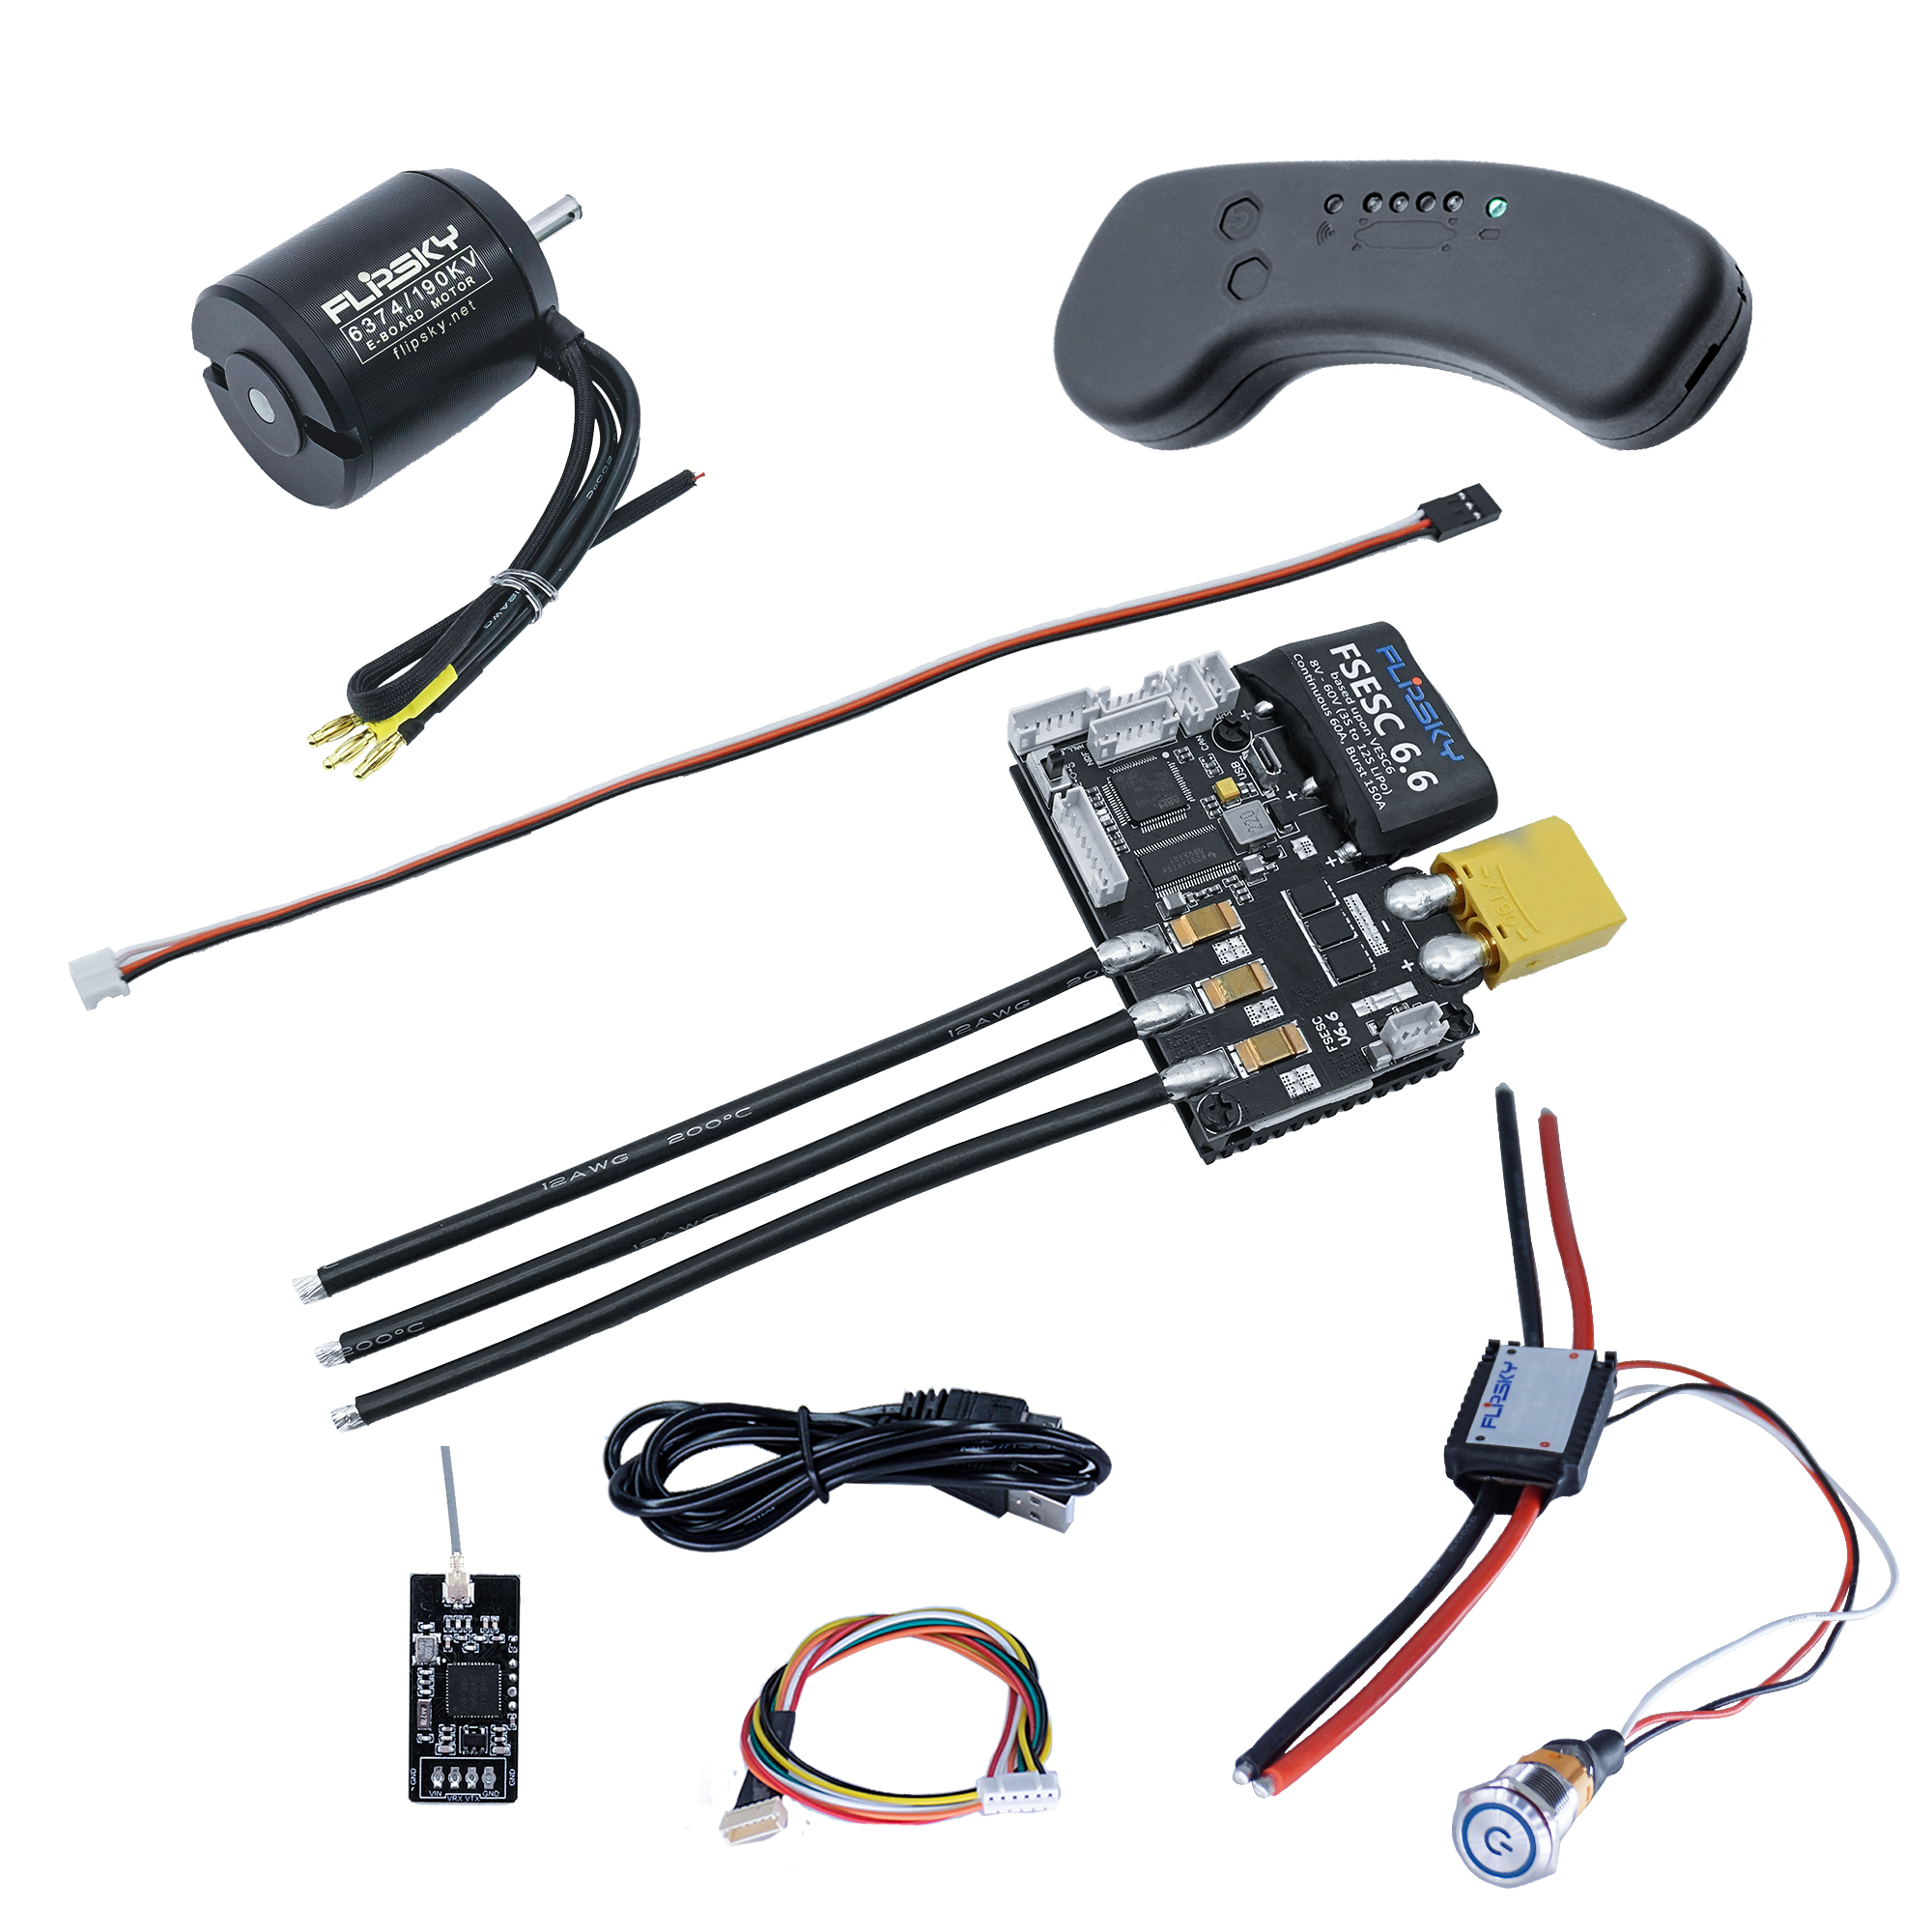 Skateboard ESC Combo Motor 6374 + VESC 6.6 + Remote Controller +Bluetooth Skateboard Motor DIY Kit Full Complement